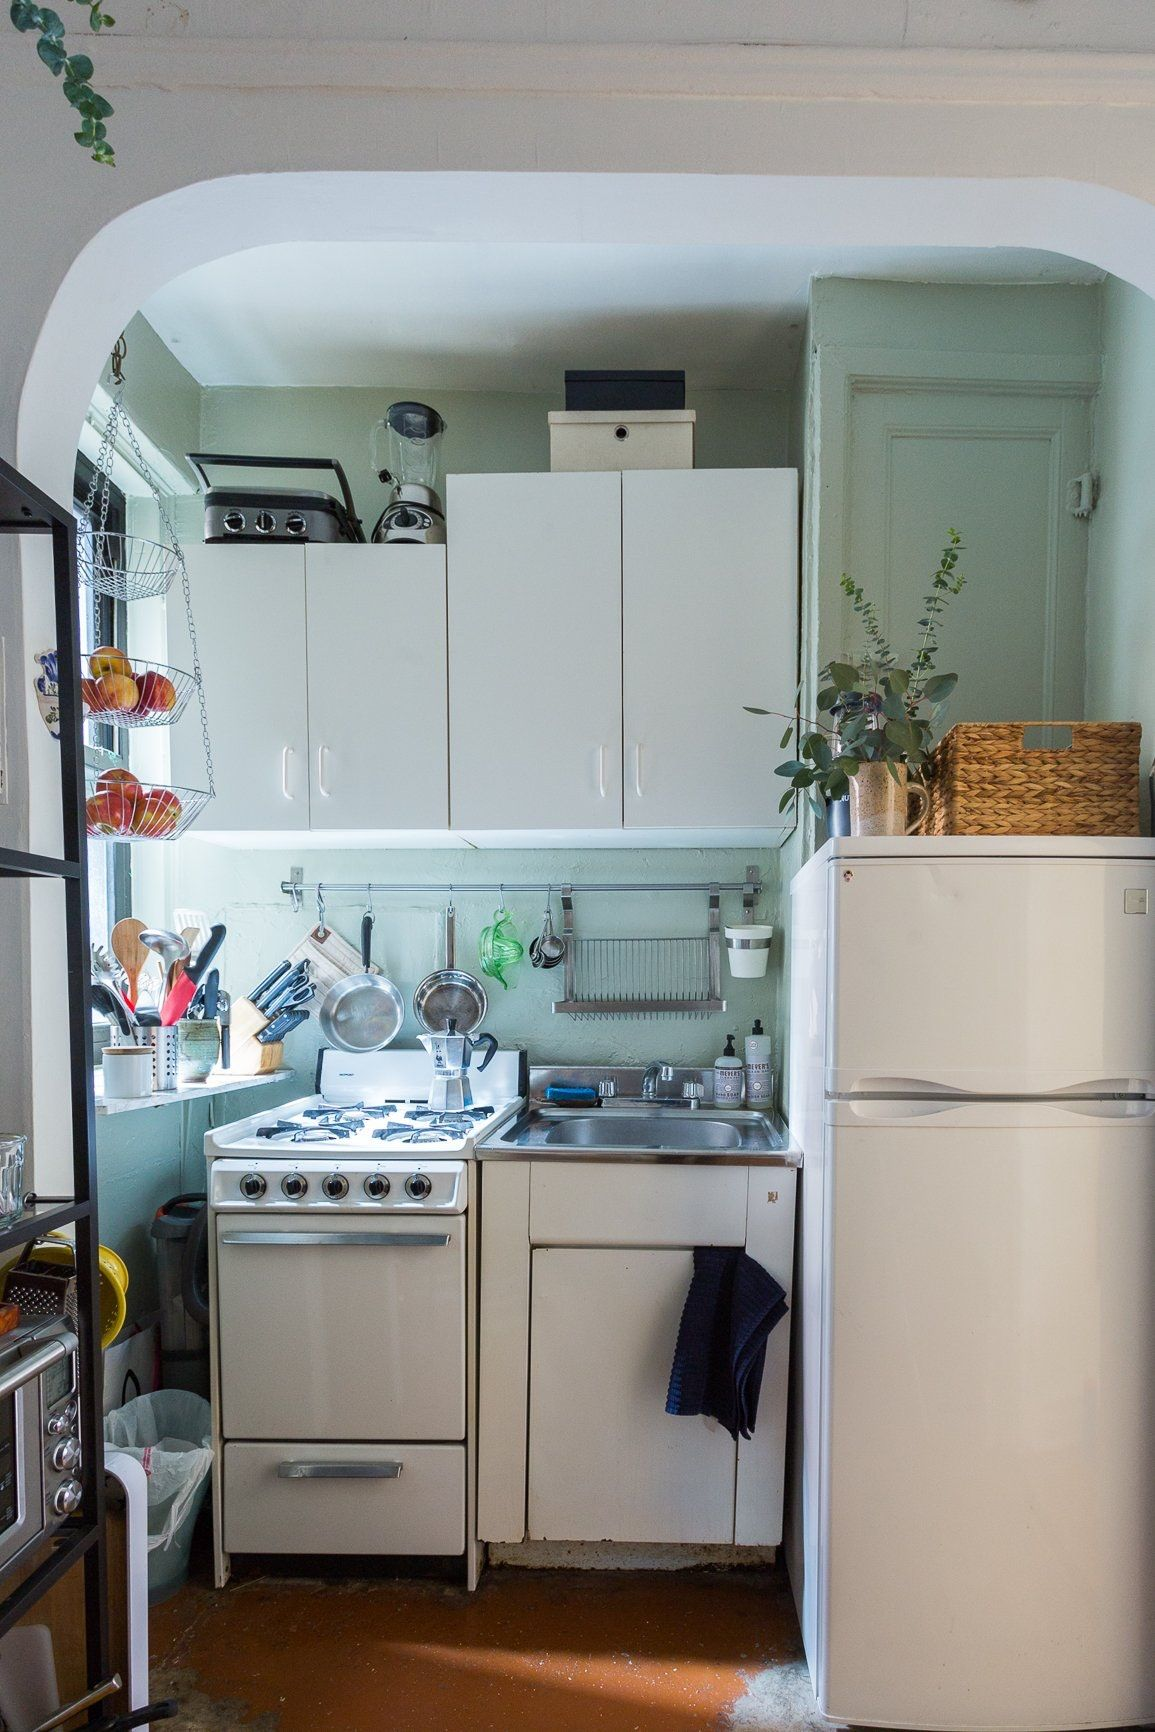 10 Genius Tips for Cooking in a Tiny Kitchen | Pinterest | Kitchens ...